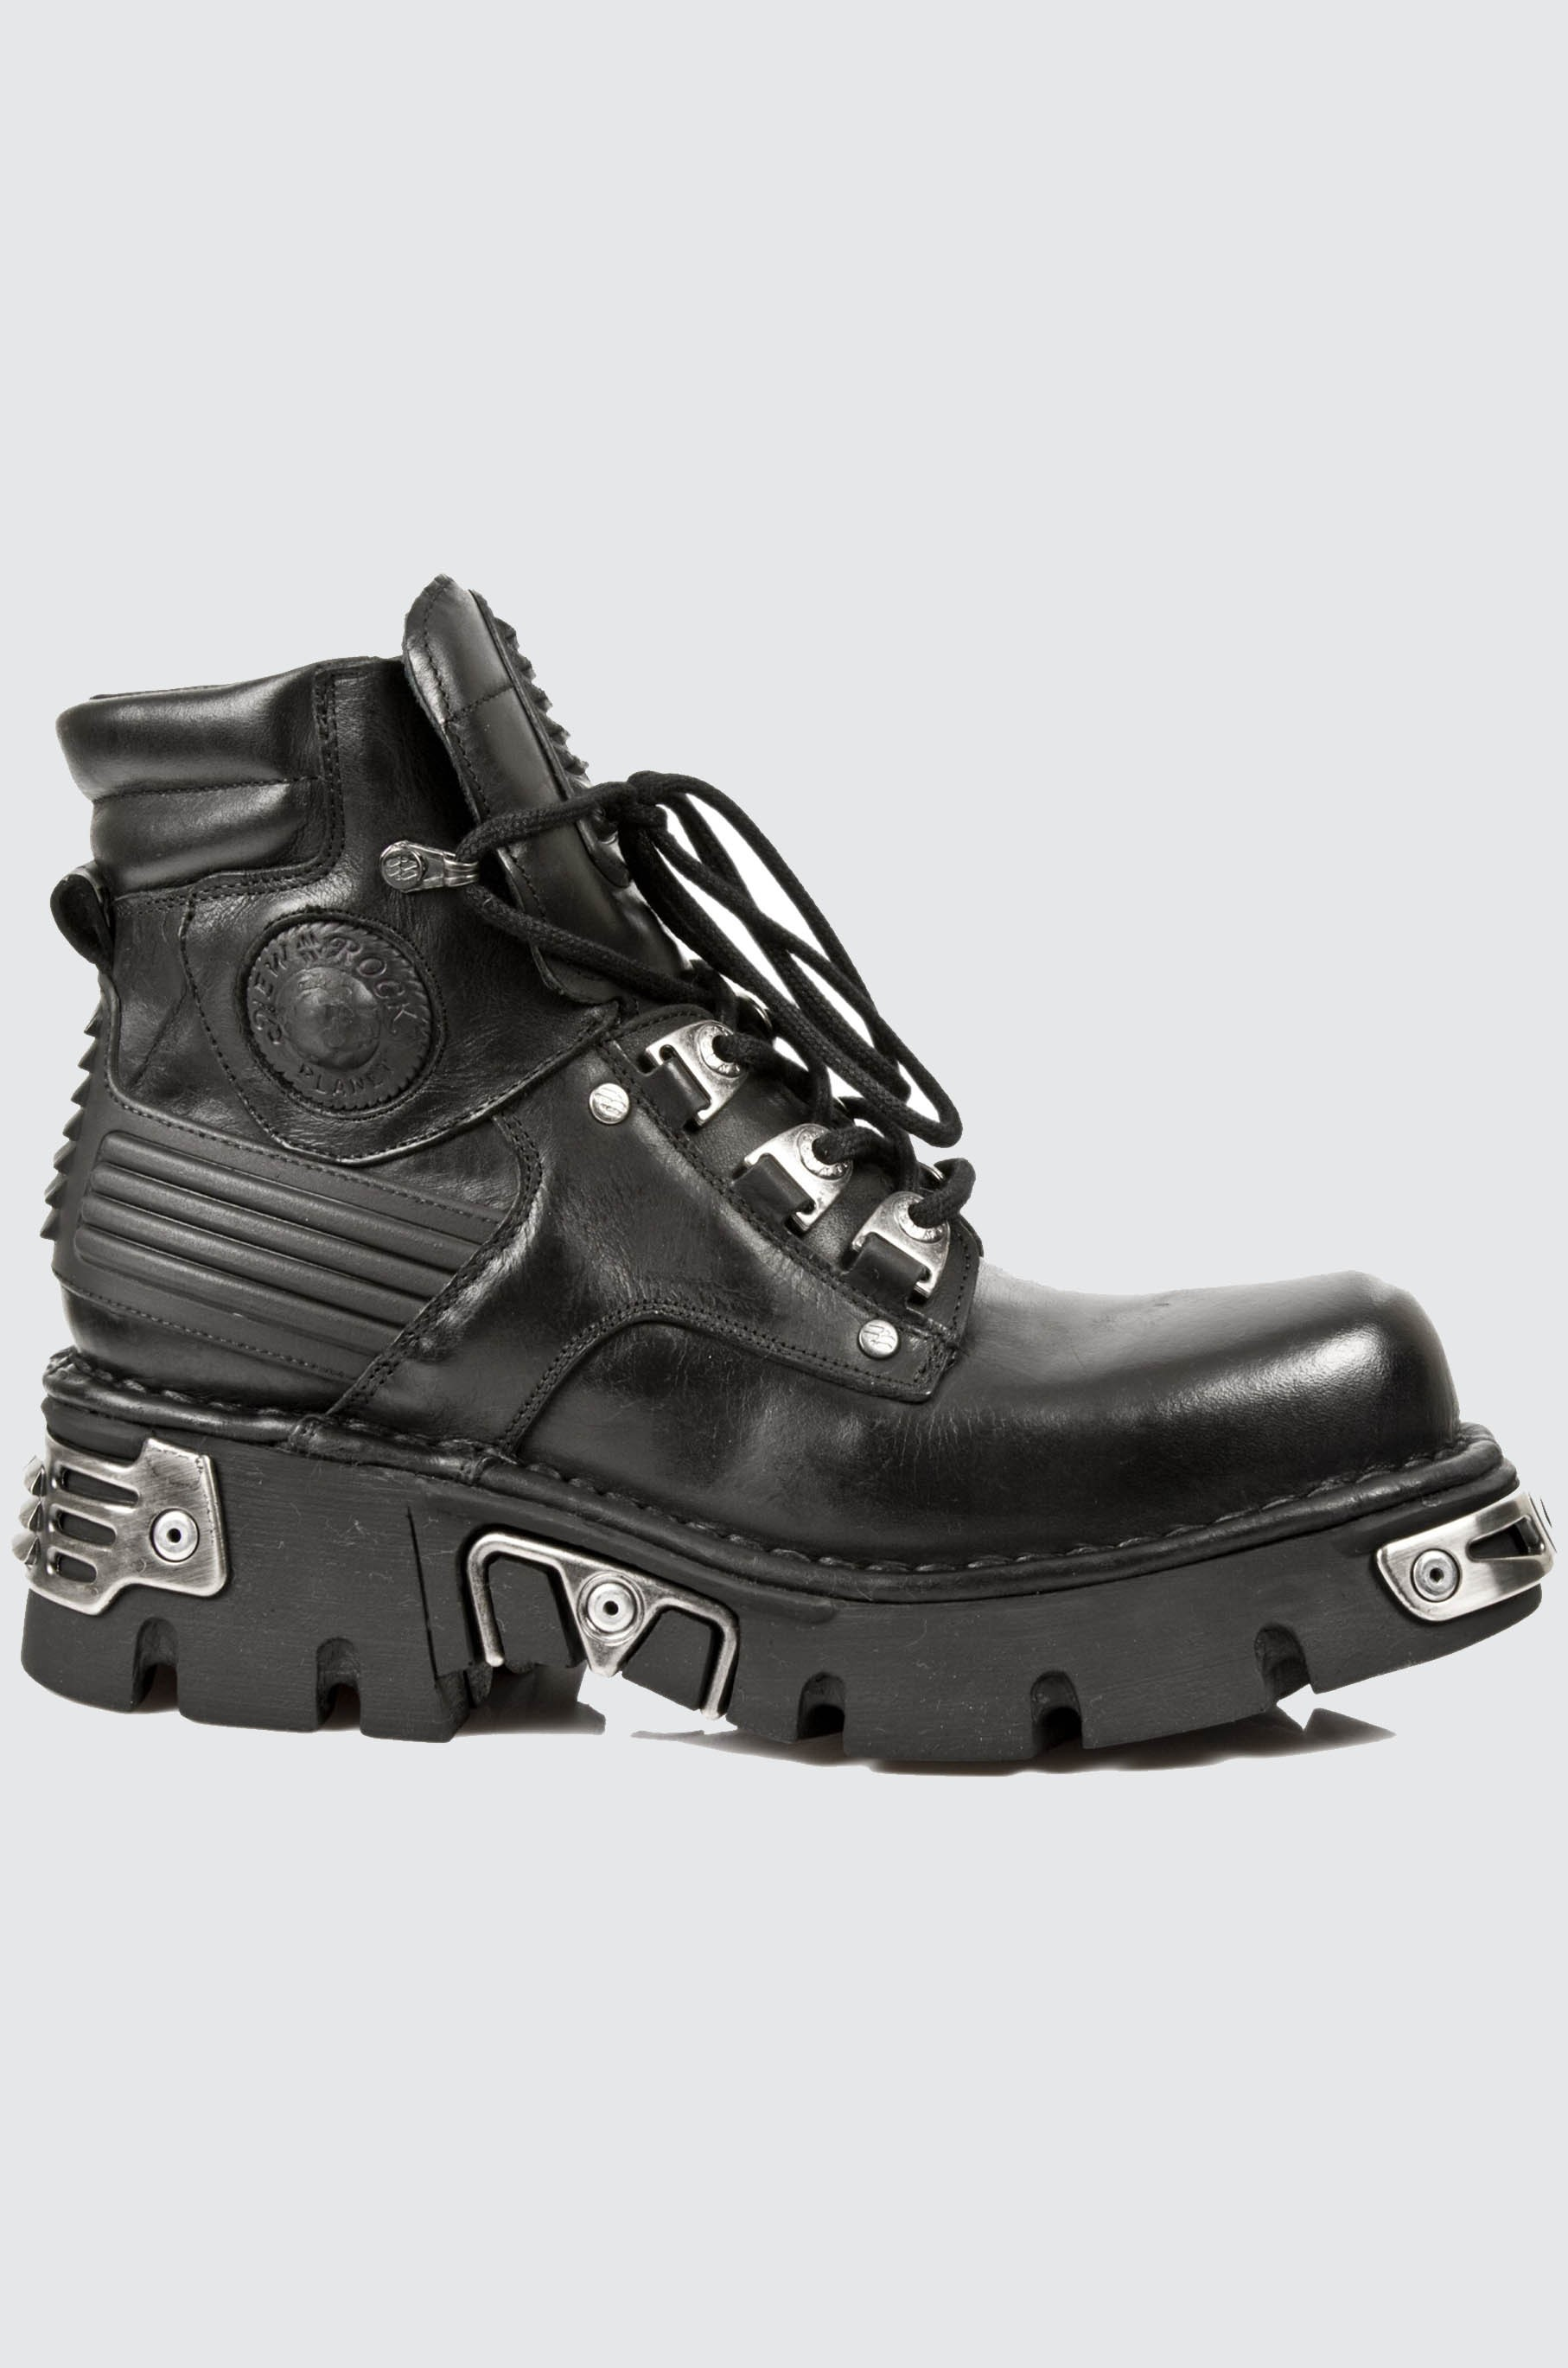 New Rock M.924-S1 Metallic Mens Black Gothic boot Leather Boots